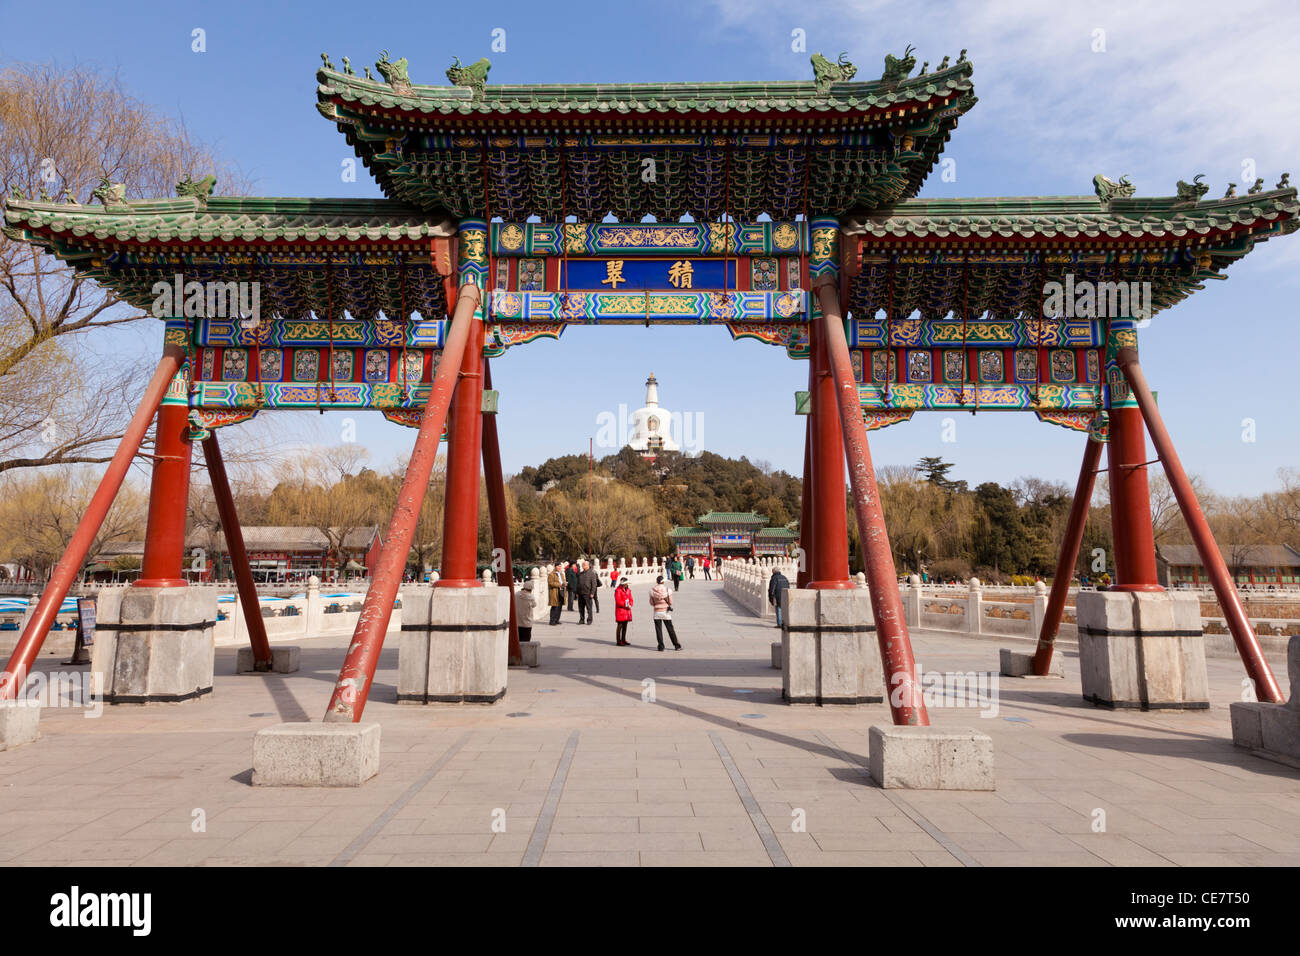 Entrance gate at Beihai Park, Beijing, China, with the White Pagoda behind. Stock Photo